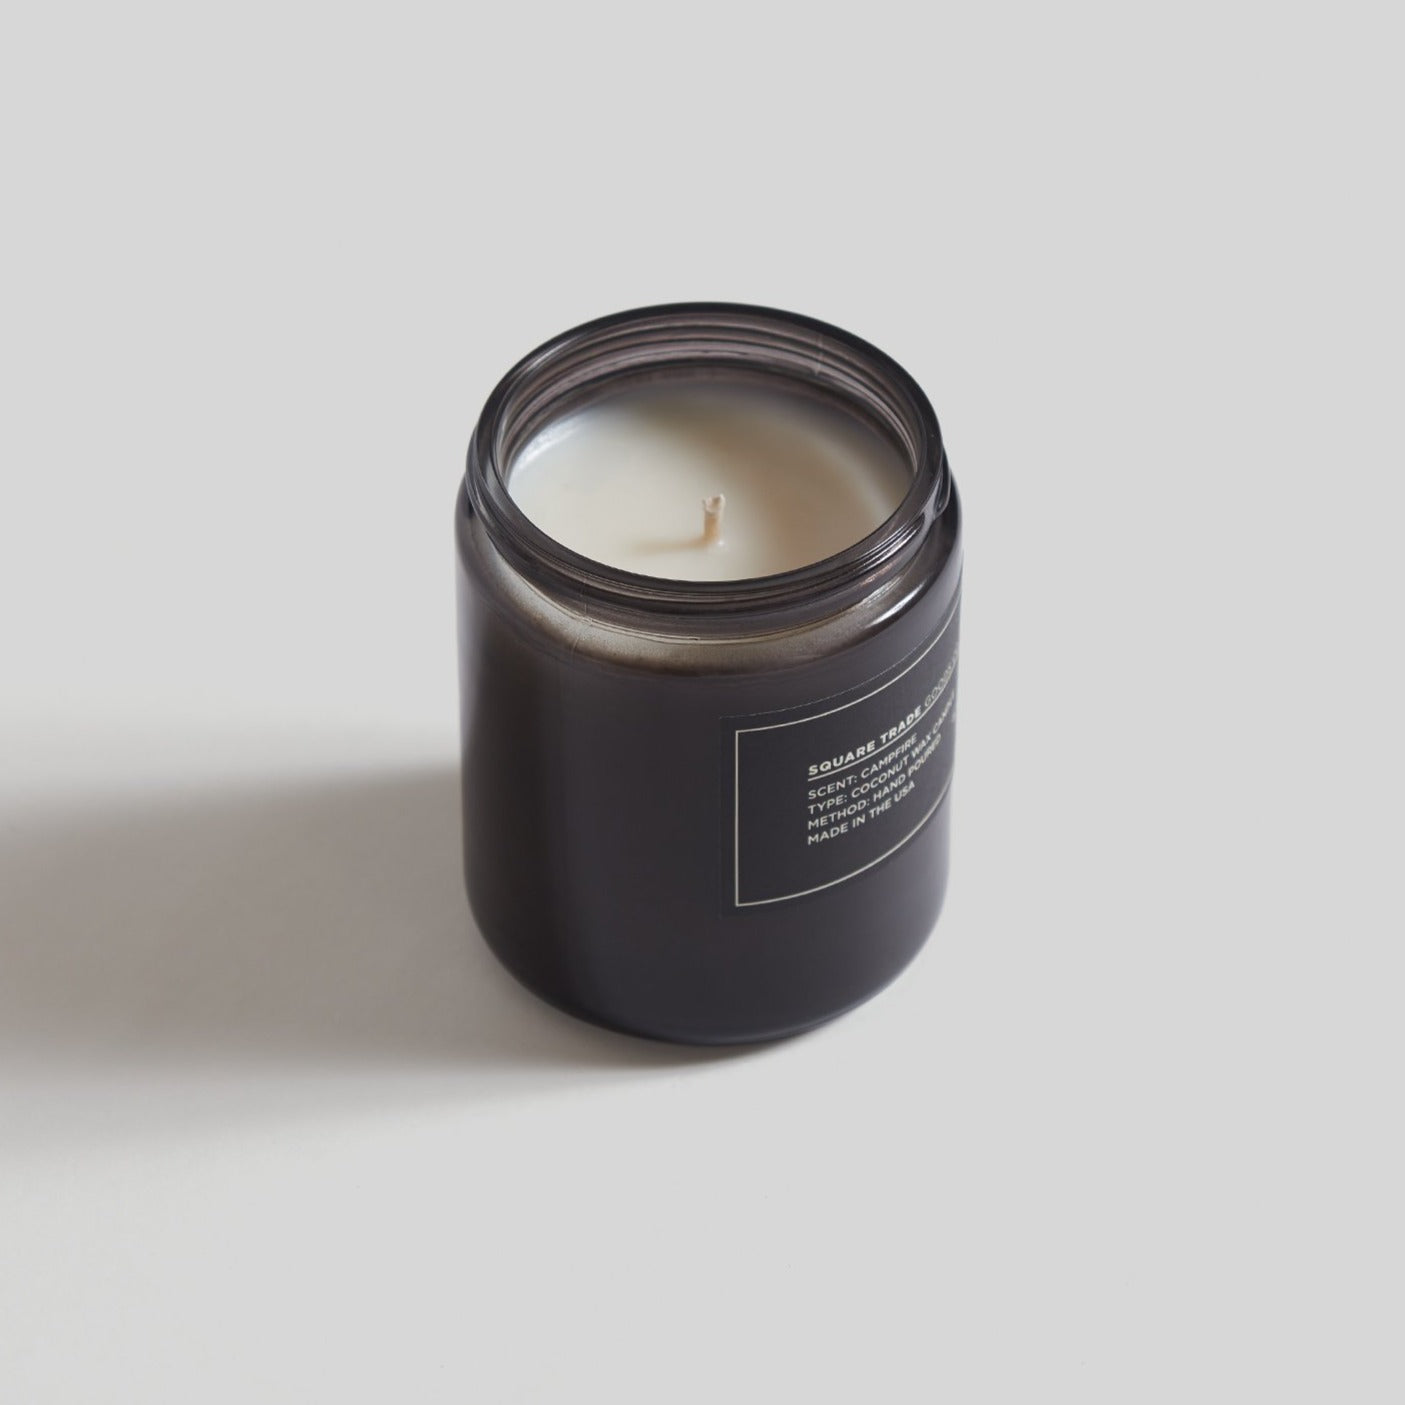 Square Trade Goods 8 oz Candle - Campfire